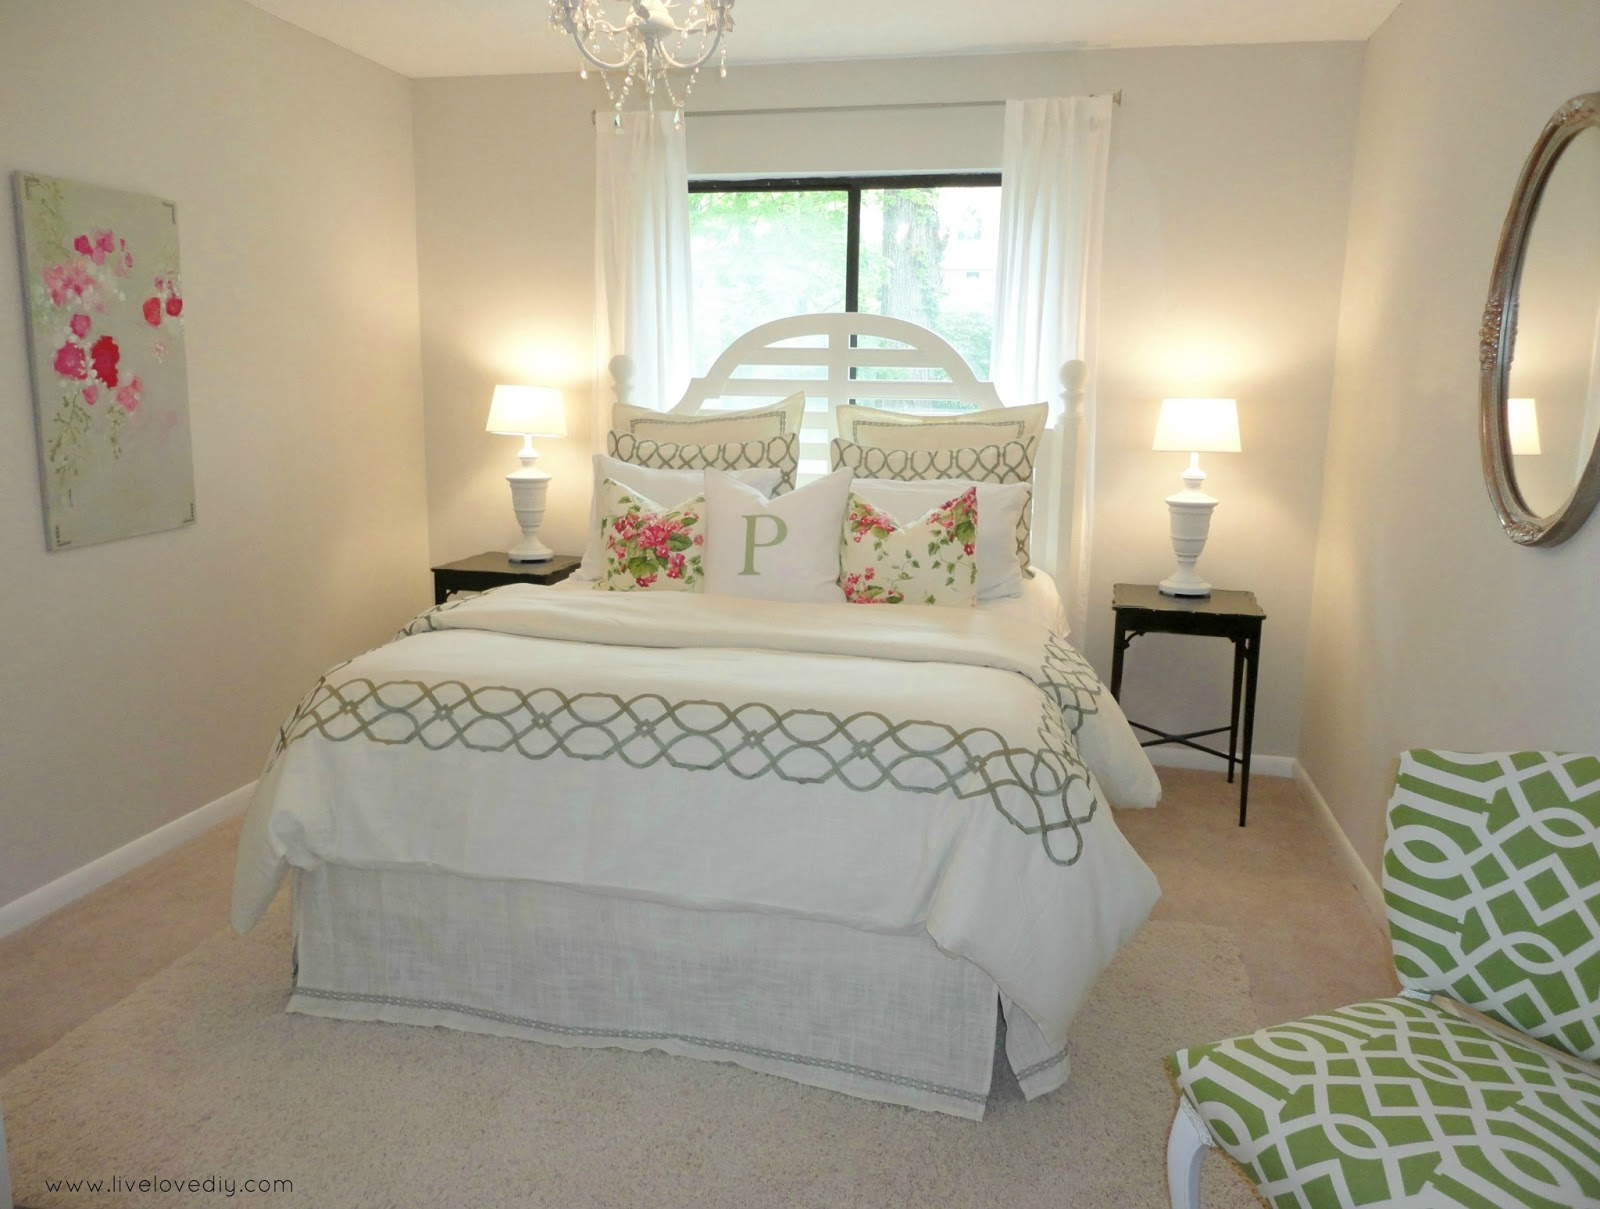 Nice Decorating Bedrooms With Secondhand Finds: The Guest Bedroom Reveal